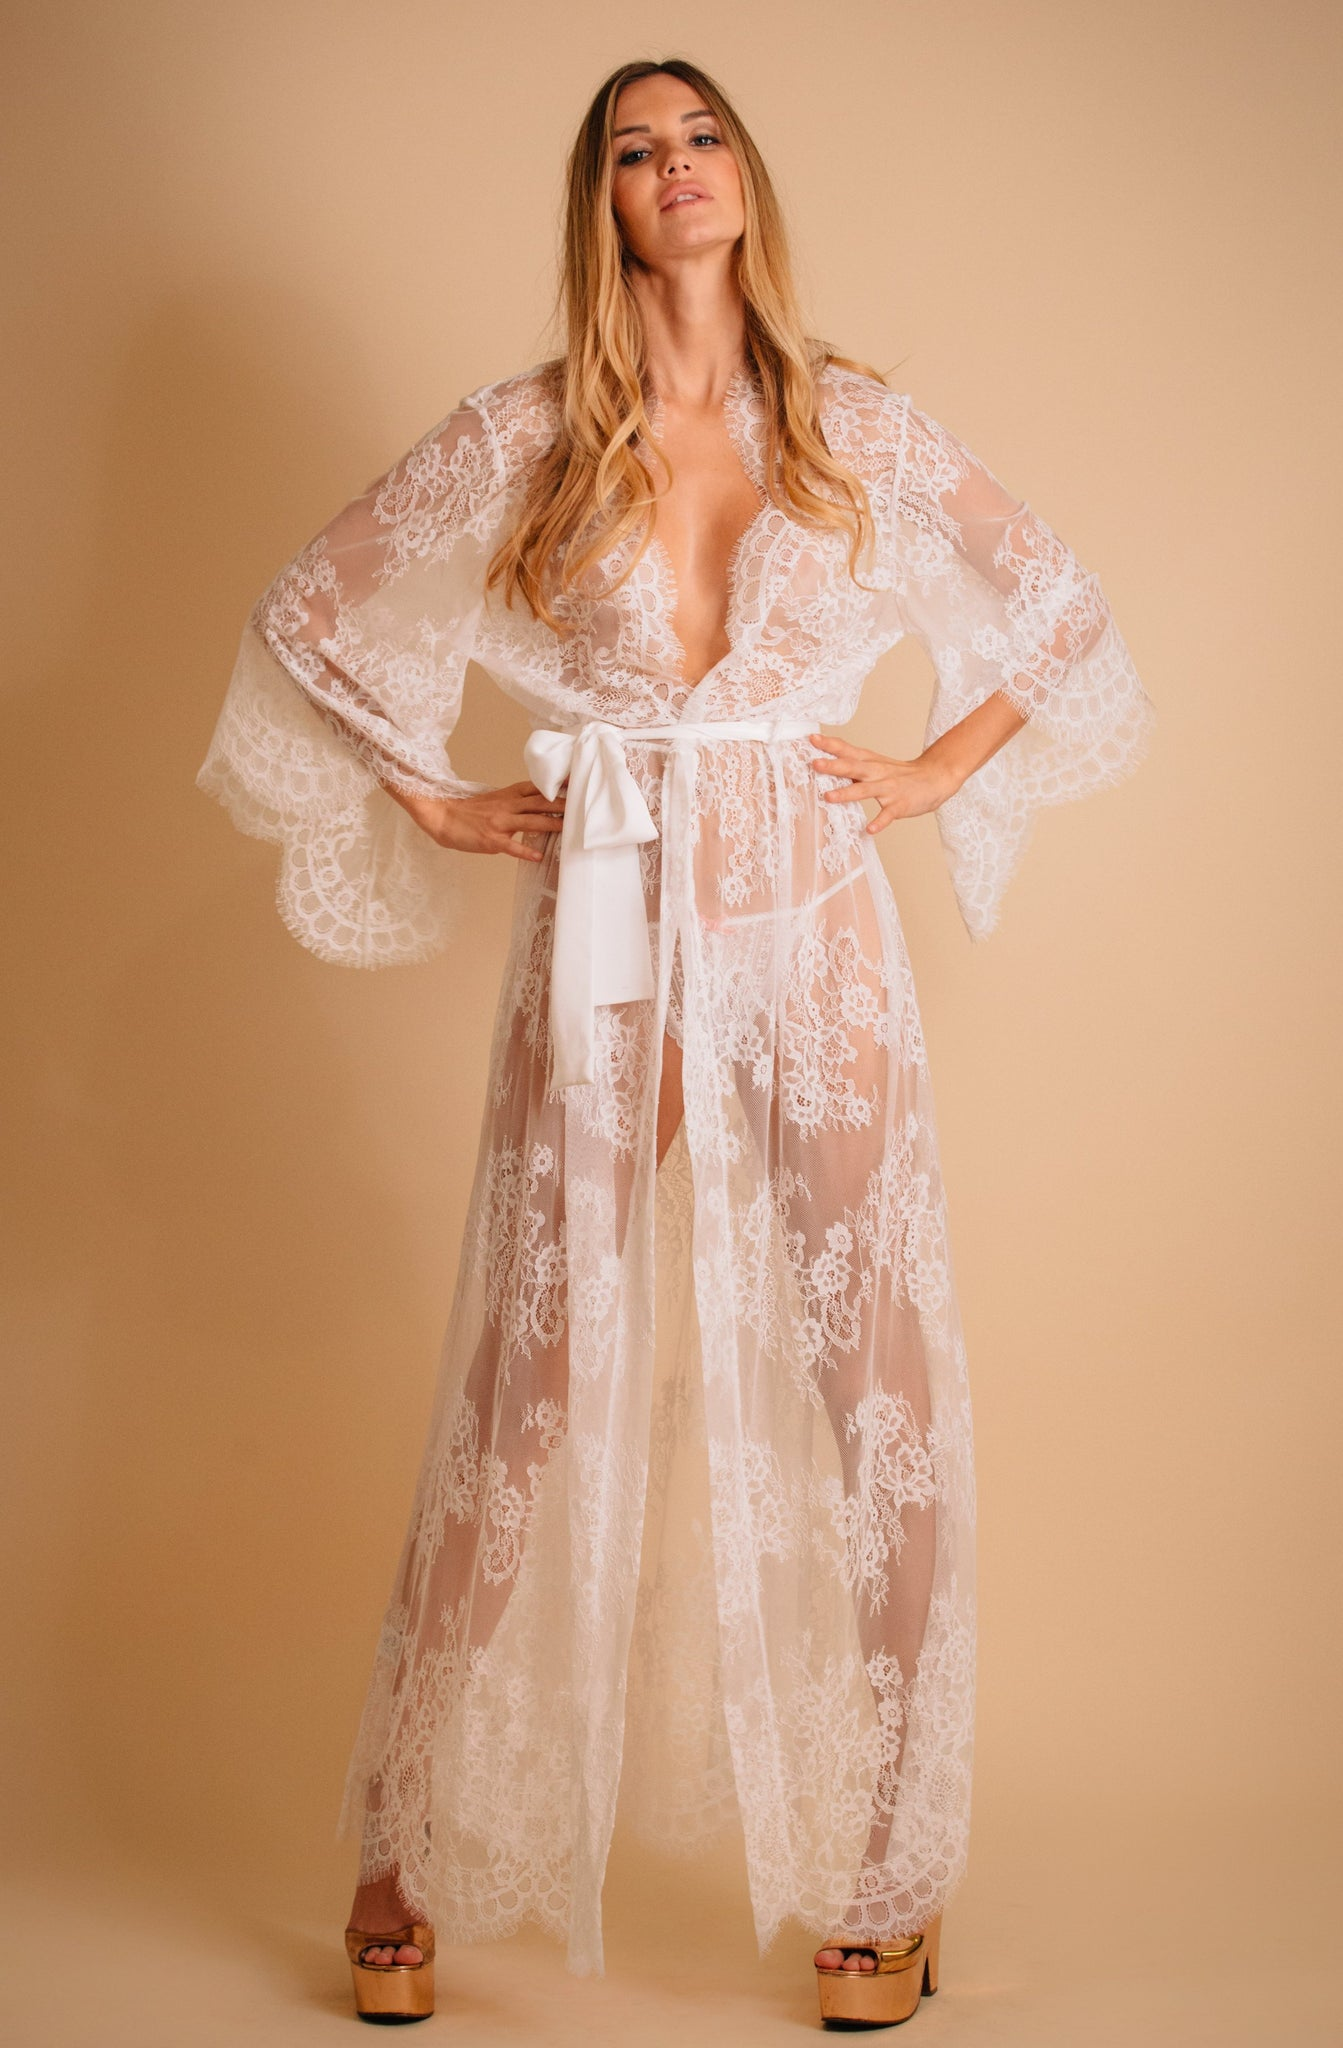 White sheer lace robe for bride